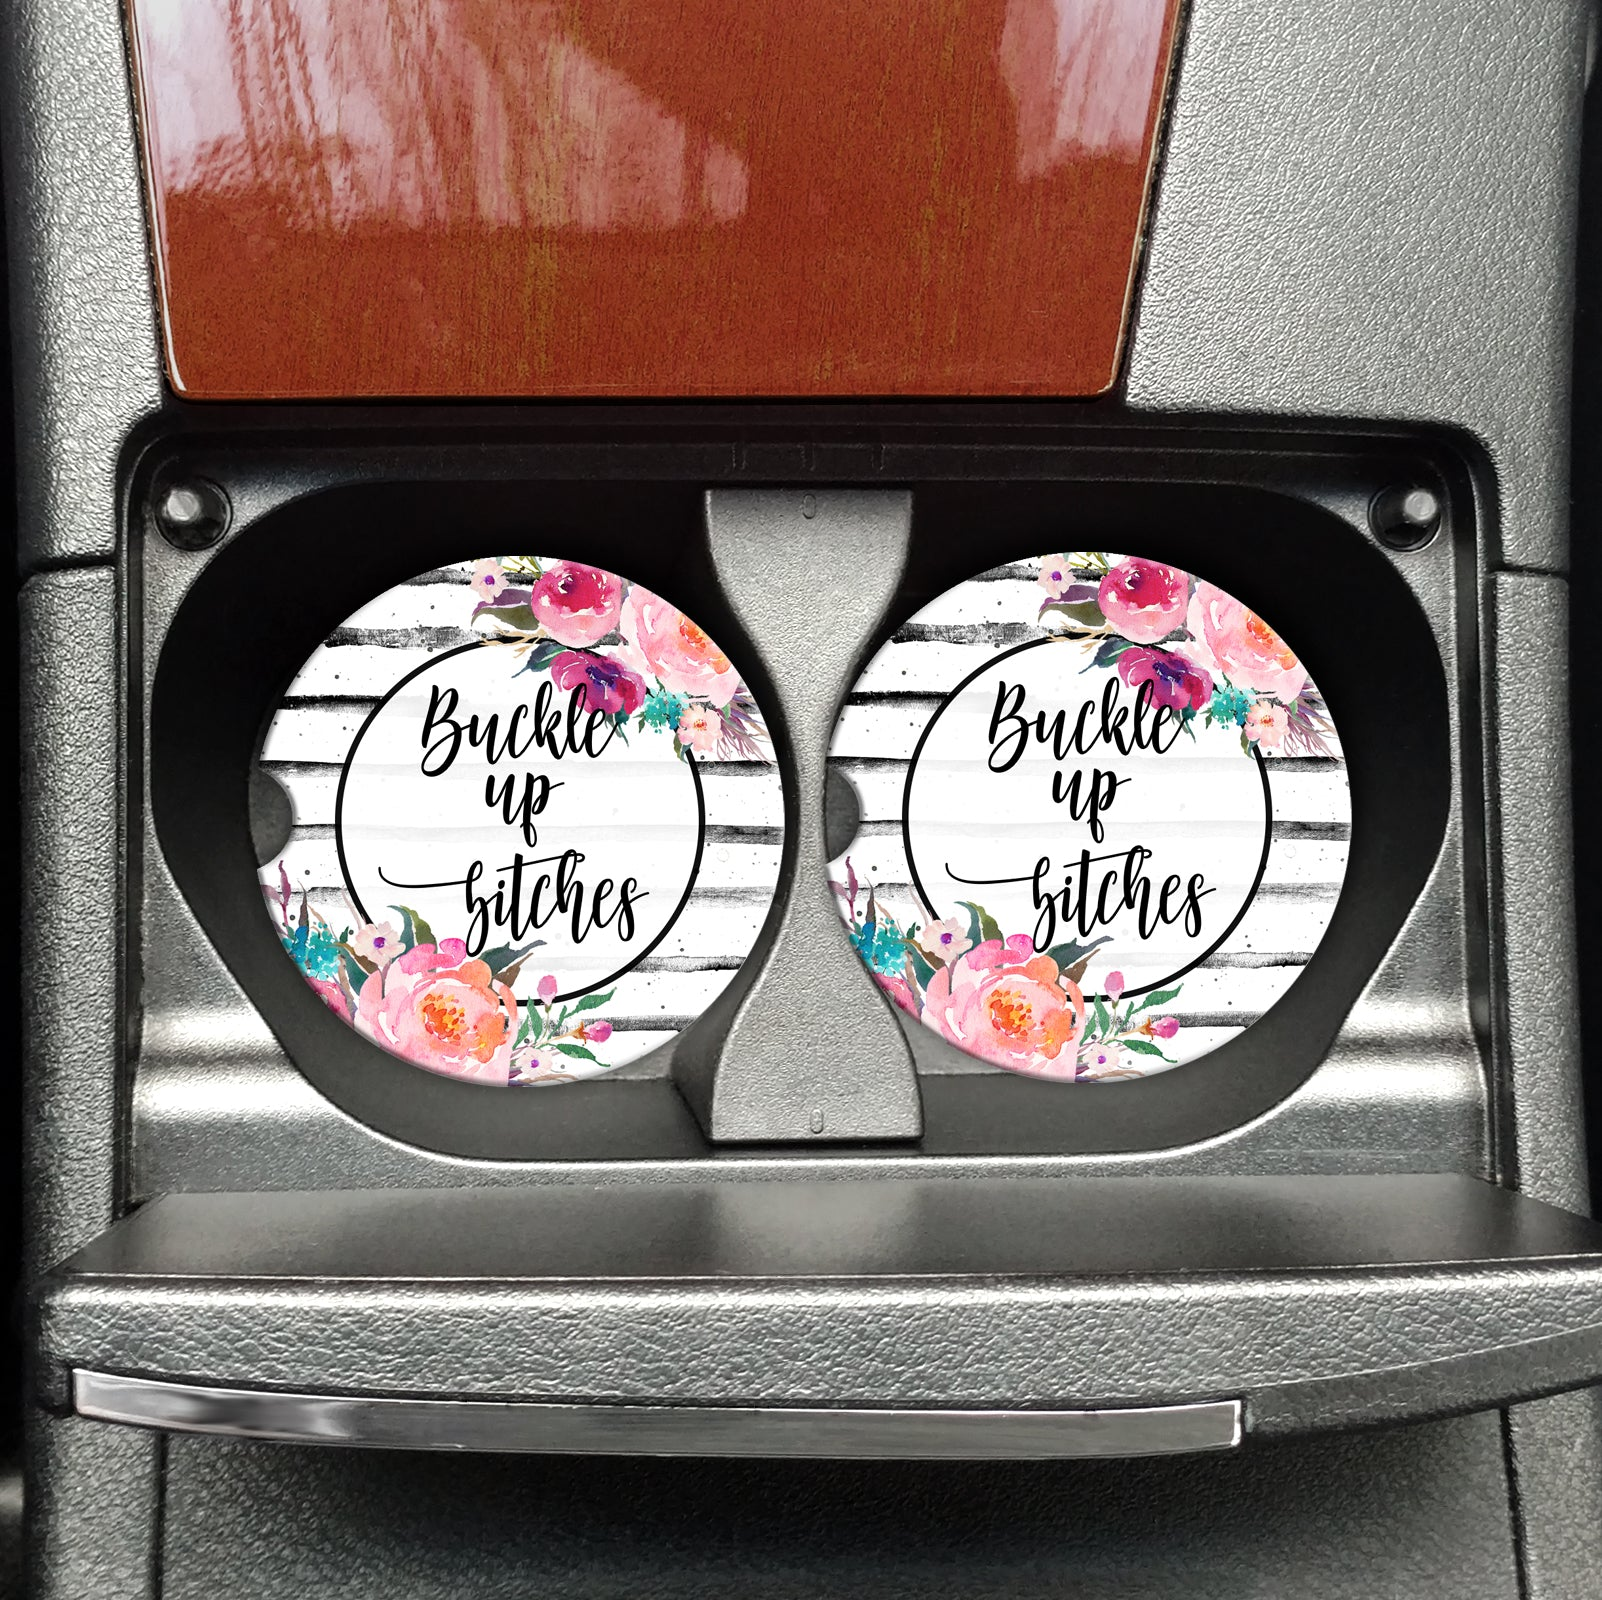 Buckle Up - Funny Coasters for your Vehicle, Buckle Up Bitches, Funny Car Accessory, Funny Accessory for your Car